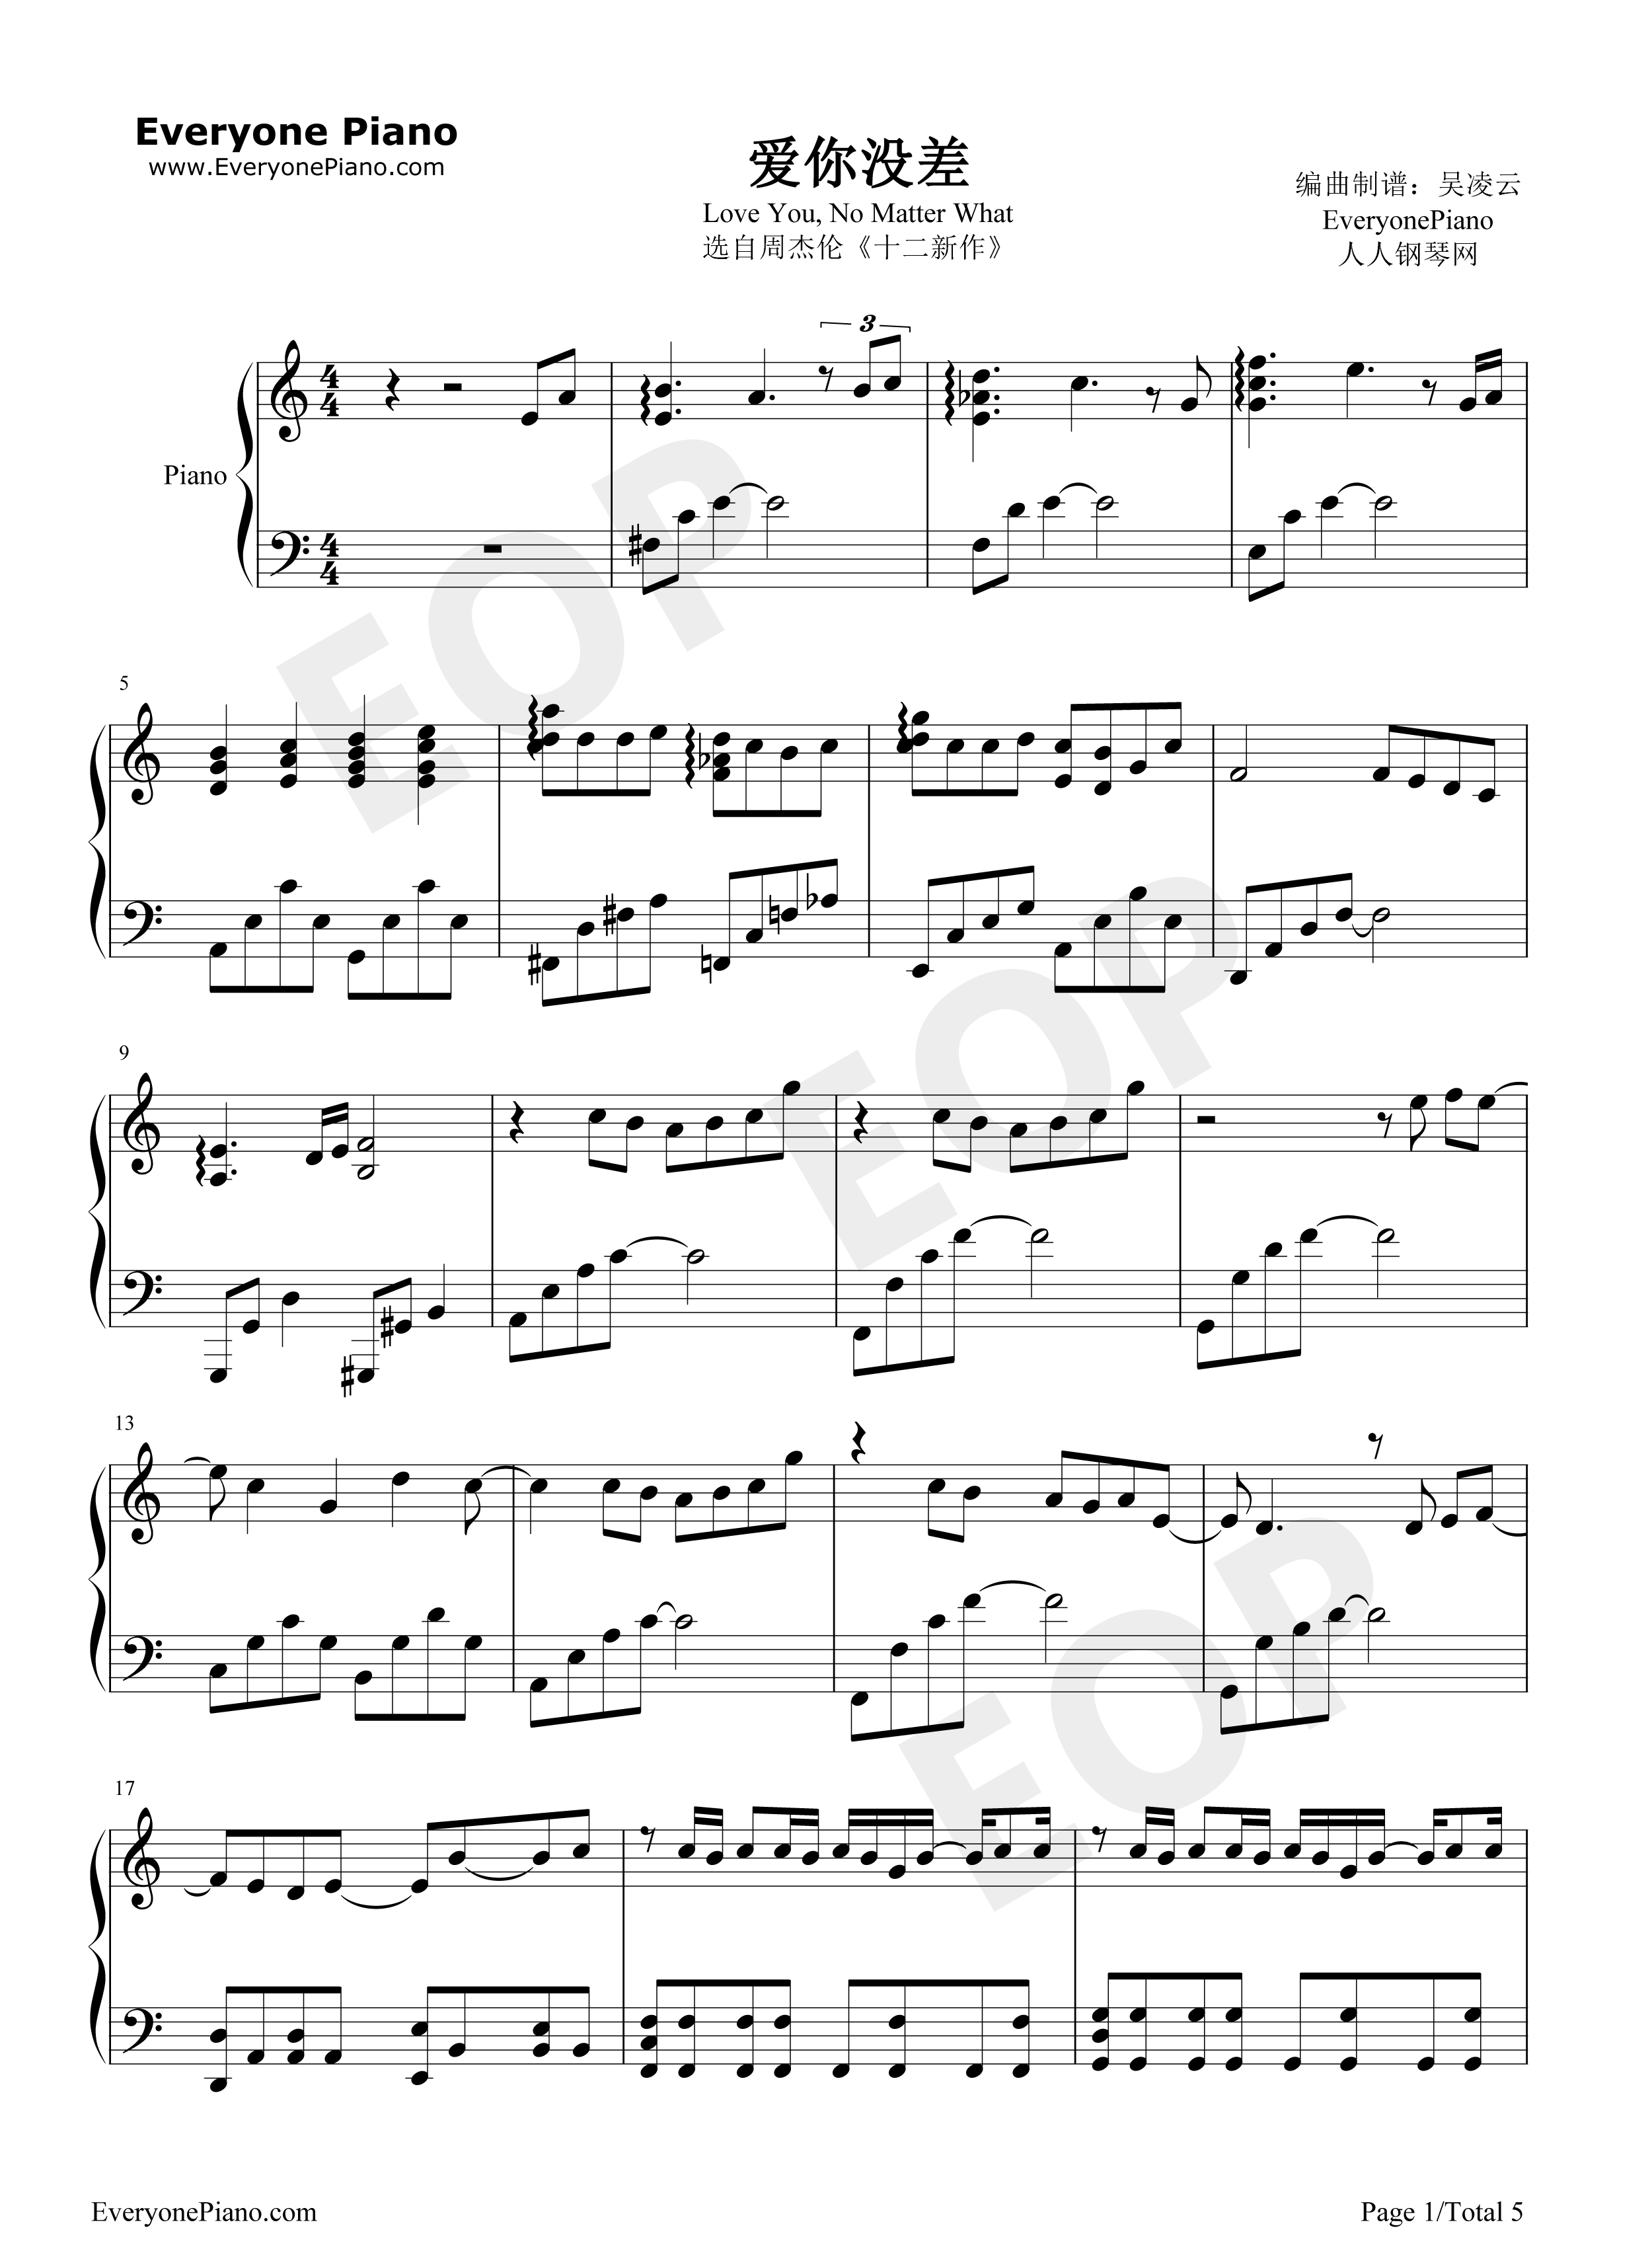 Love you no matter what stave preview 1 free piano sheet music listen now print sheet love you no matter what stave preview 1 hexwebz Gallery